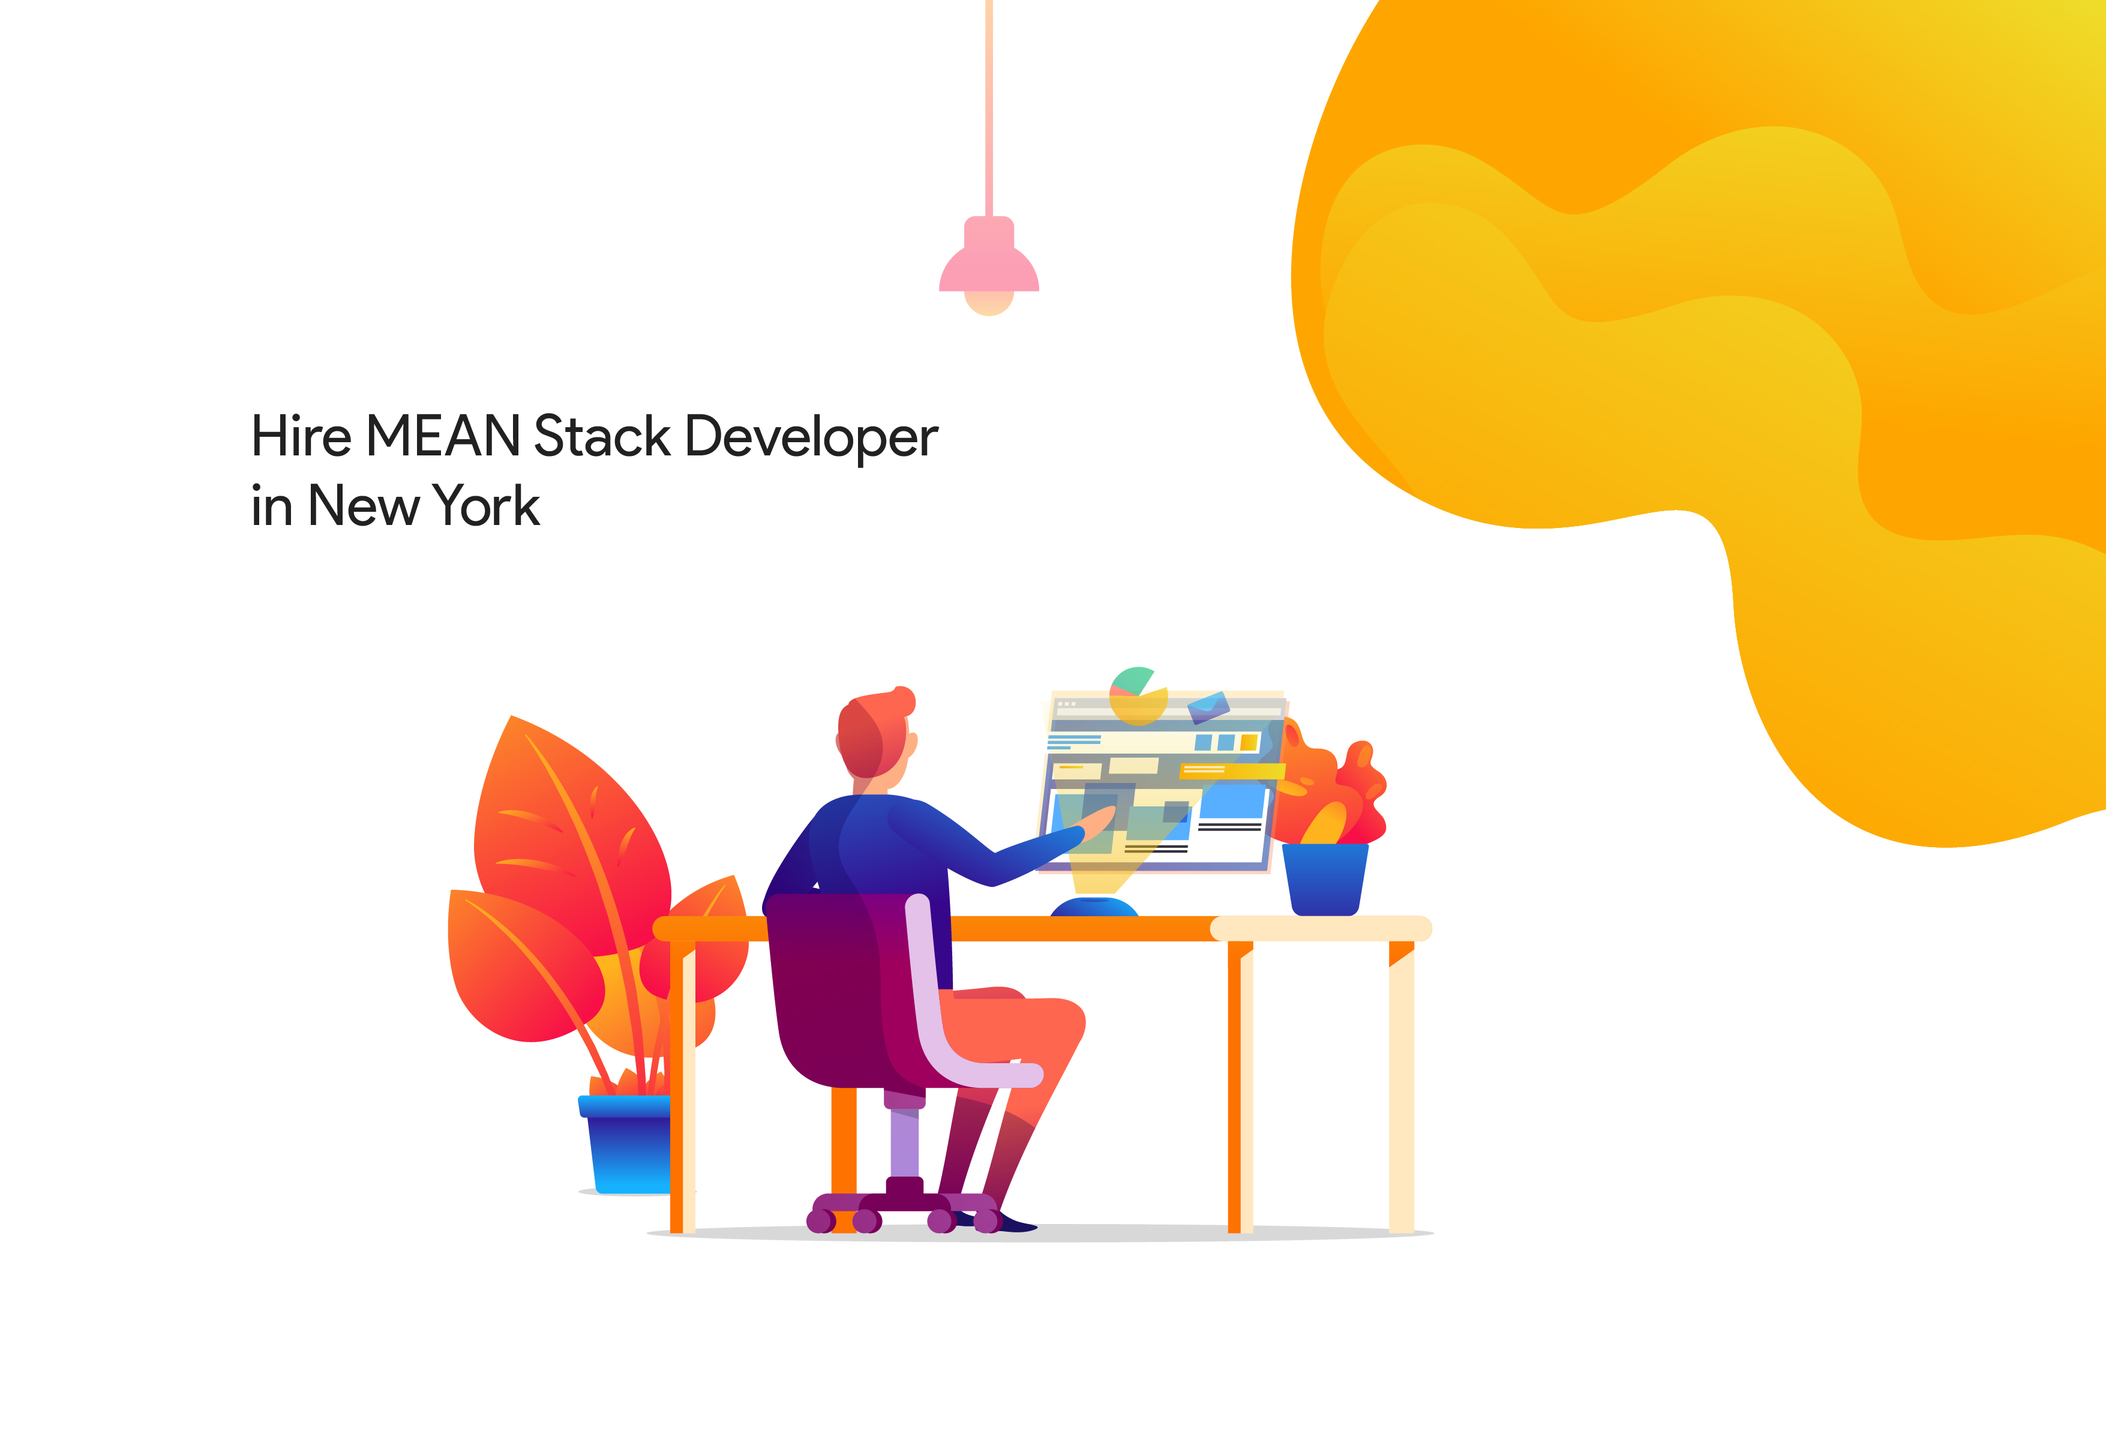 Hire Mean Stack Developer in New York